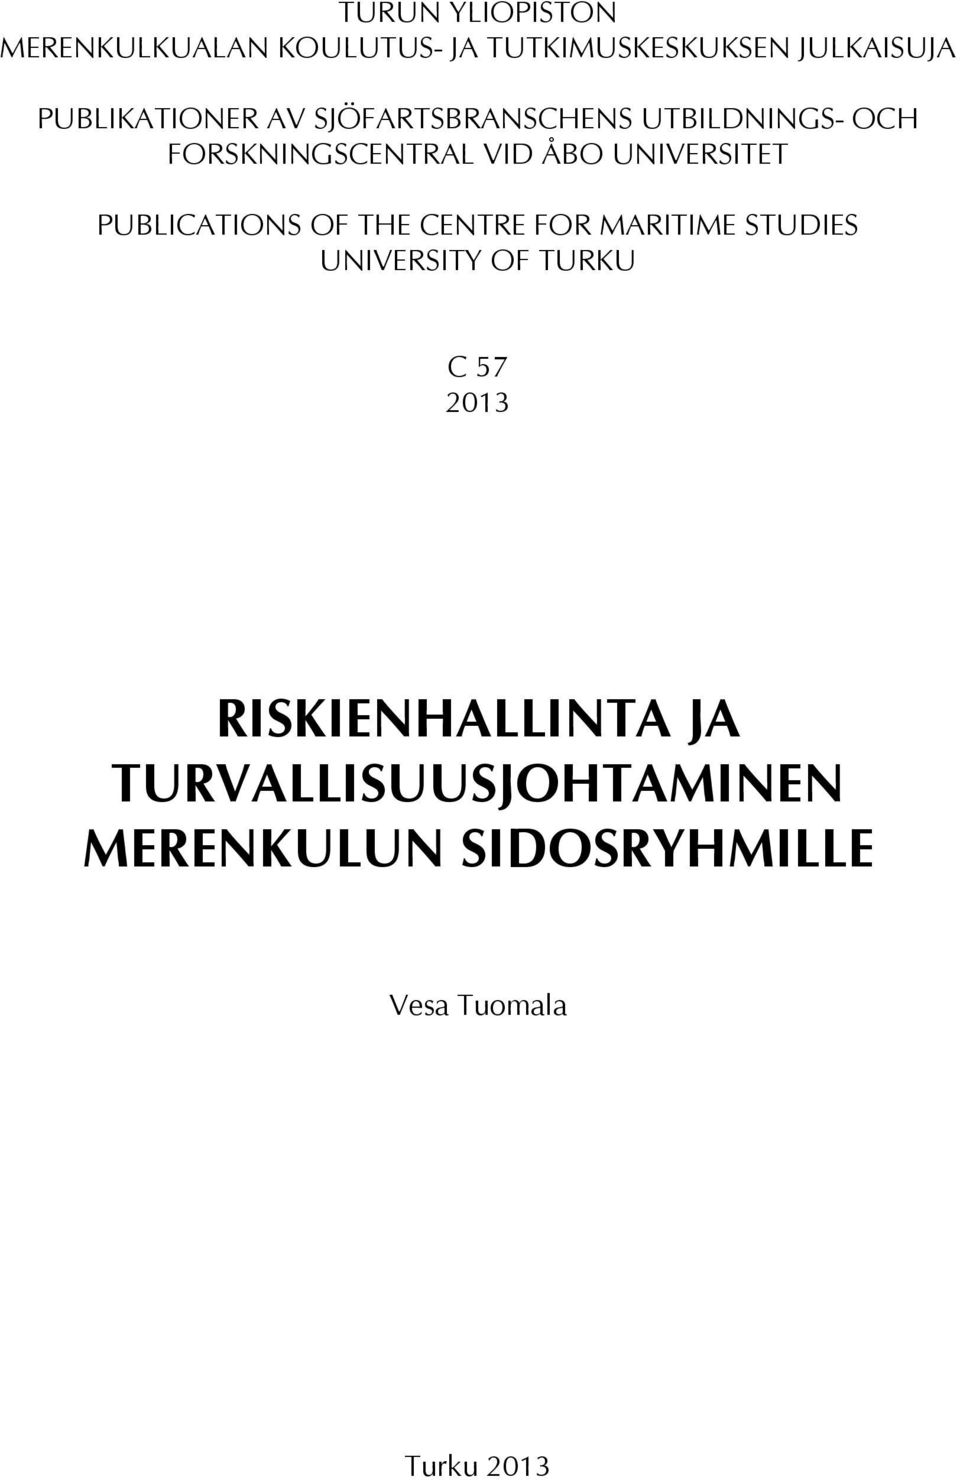 UNIVERSITET PUBLICATIONS OF THE CENTRE FOR MARITIME STUDIES UNIVERSITY OF TURKU C